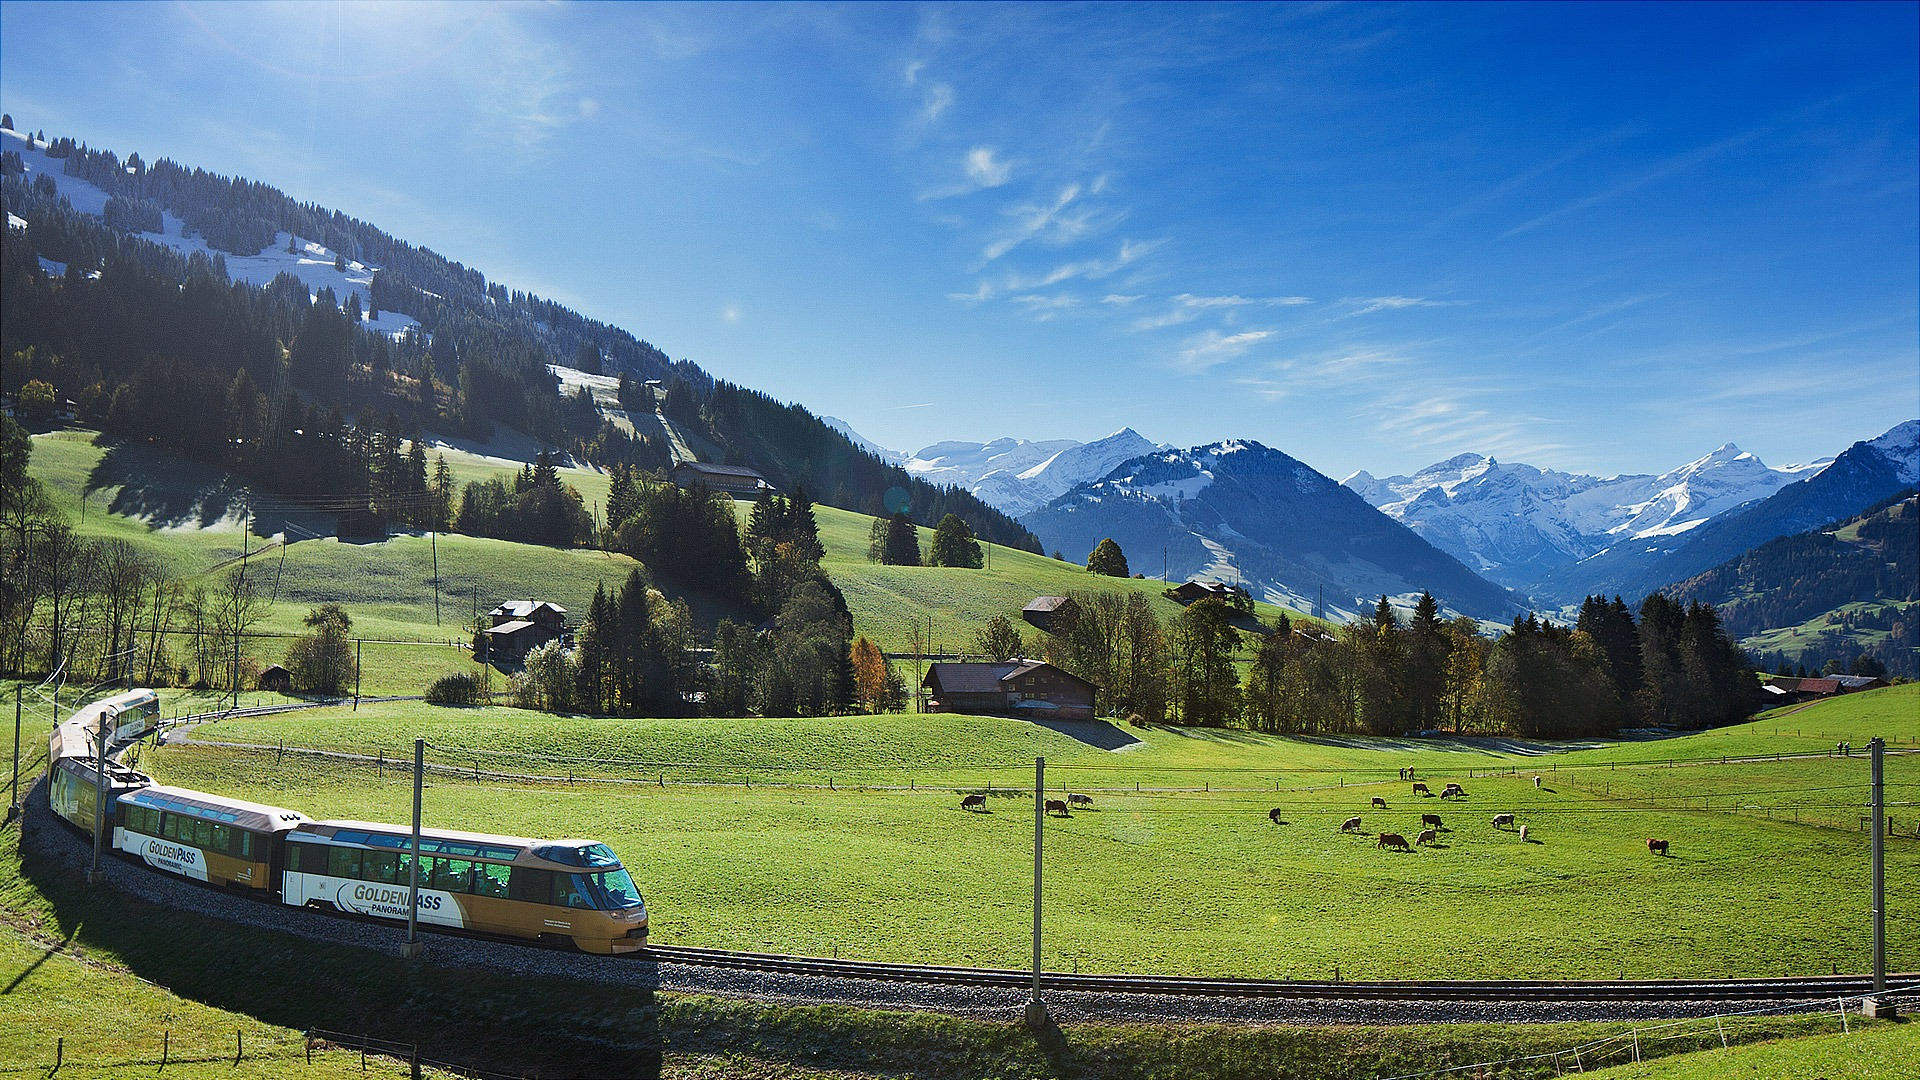 mountains, green fields, cattles grazing, and a train